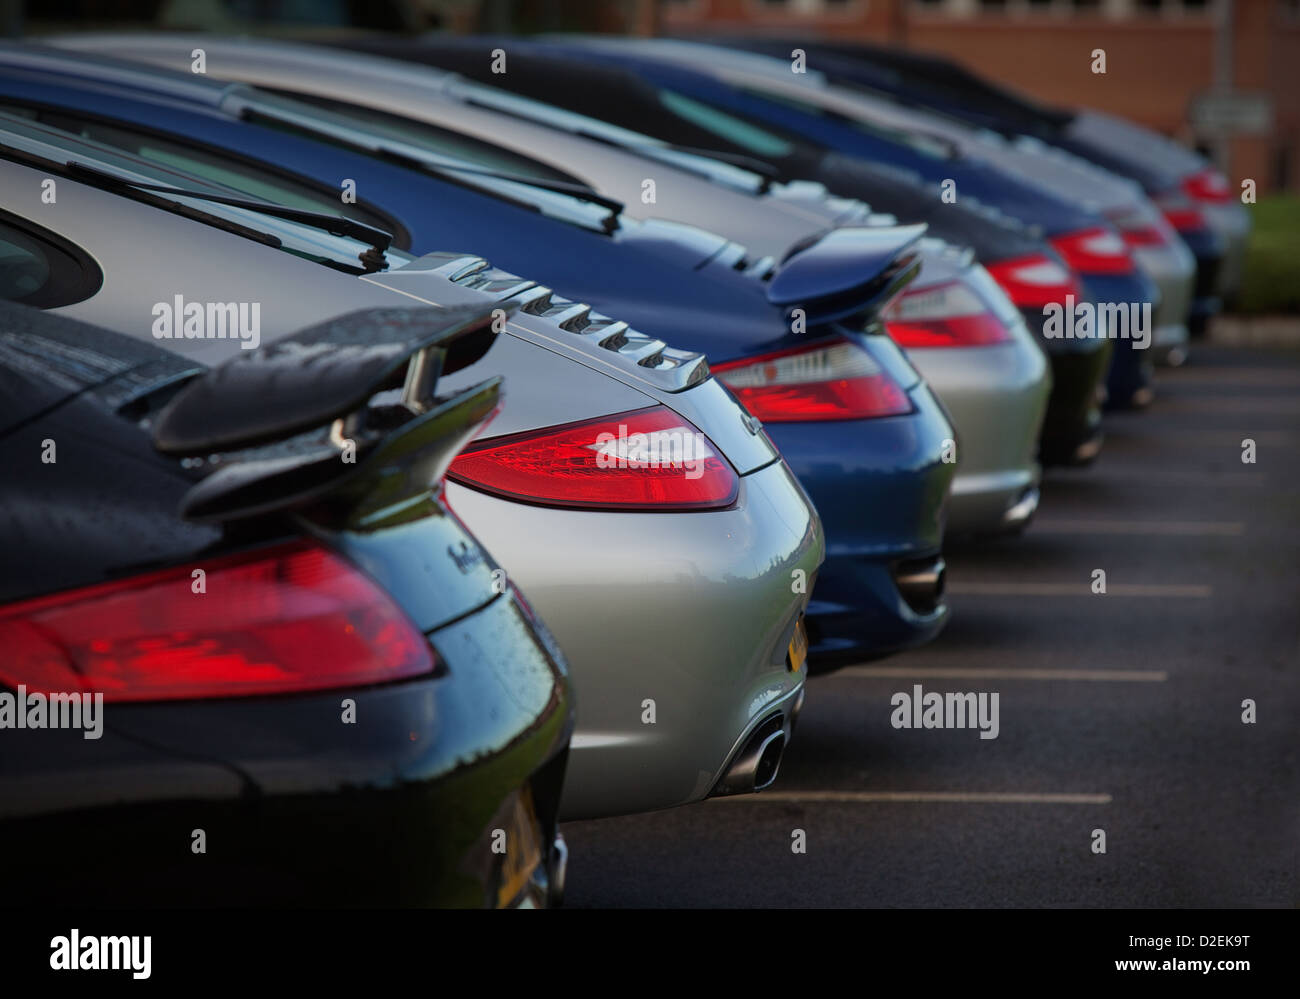 Porsche cars line up outside a car dealers Stock Photo: 53182916 - Alamy